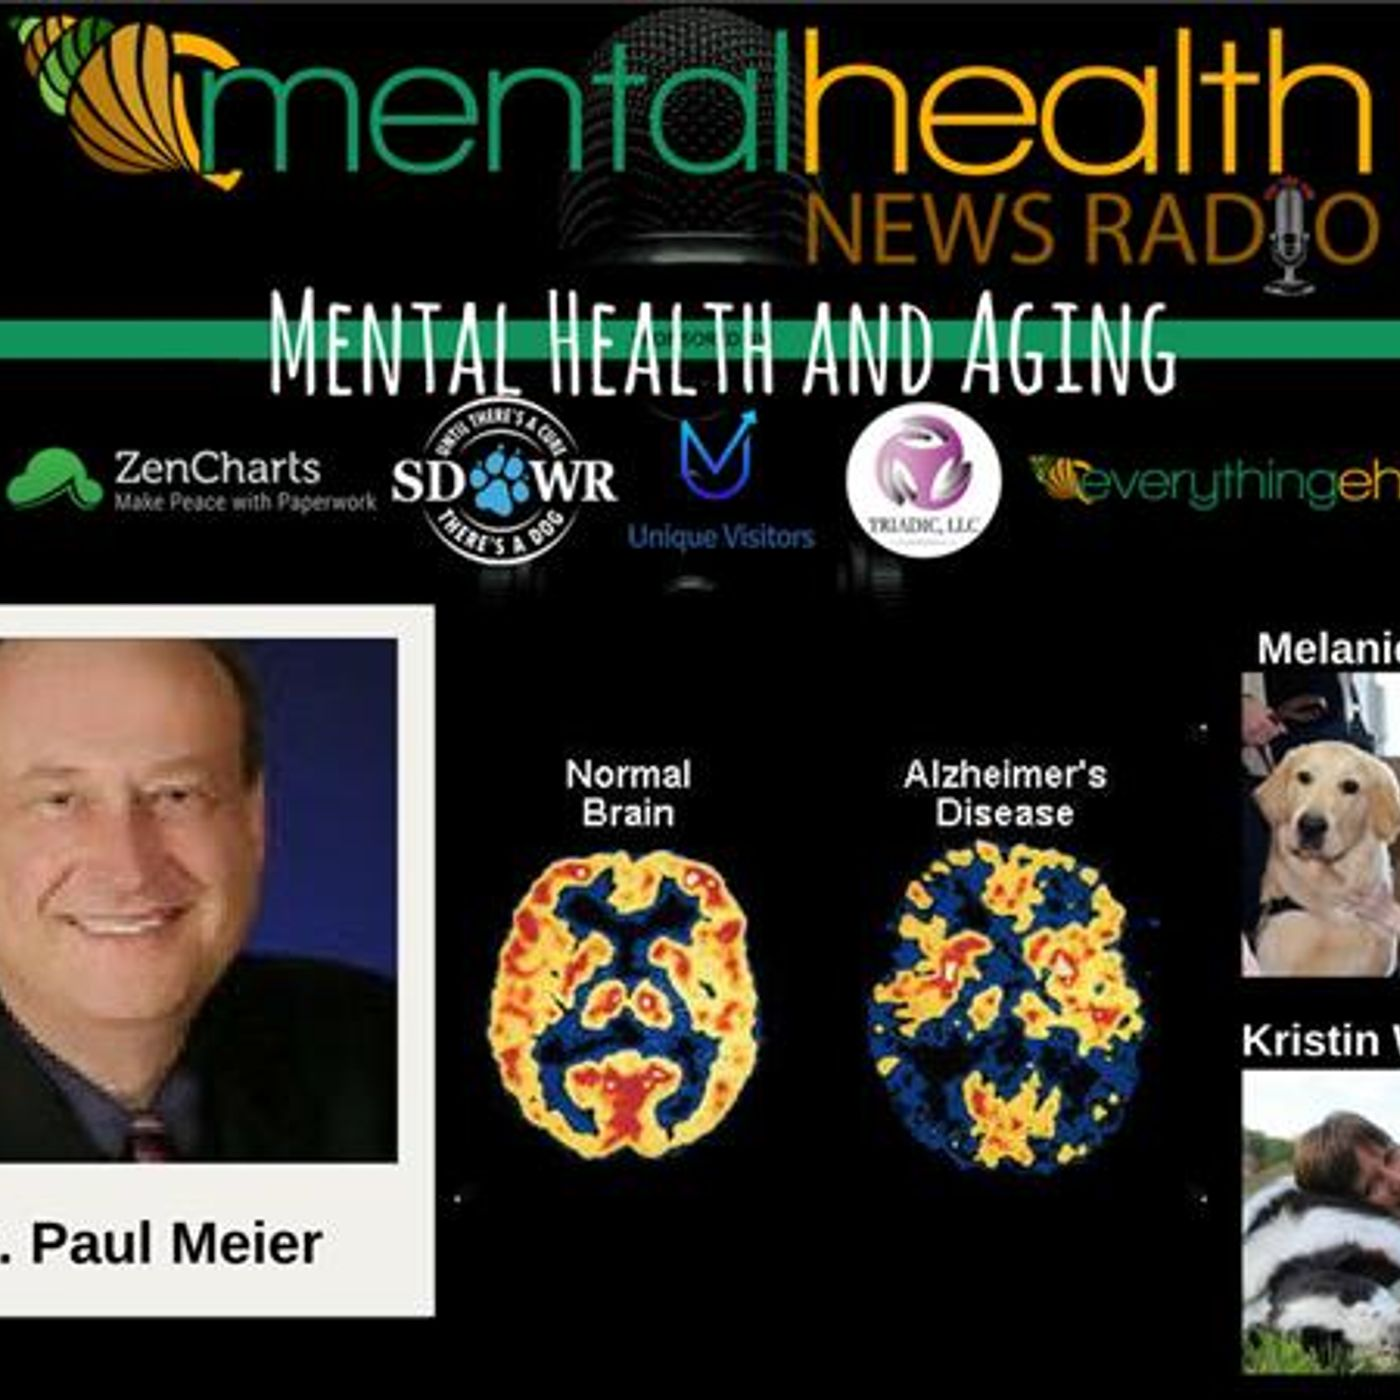 Mental Health News Radio - Round Table Discussions with Dr. Paul Meier: Mental Health and Aging